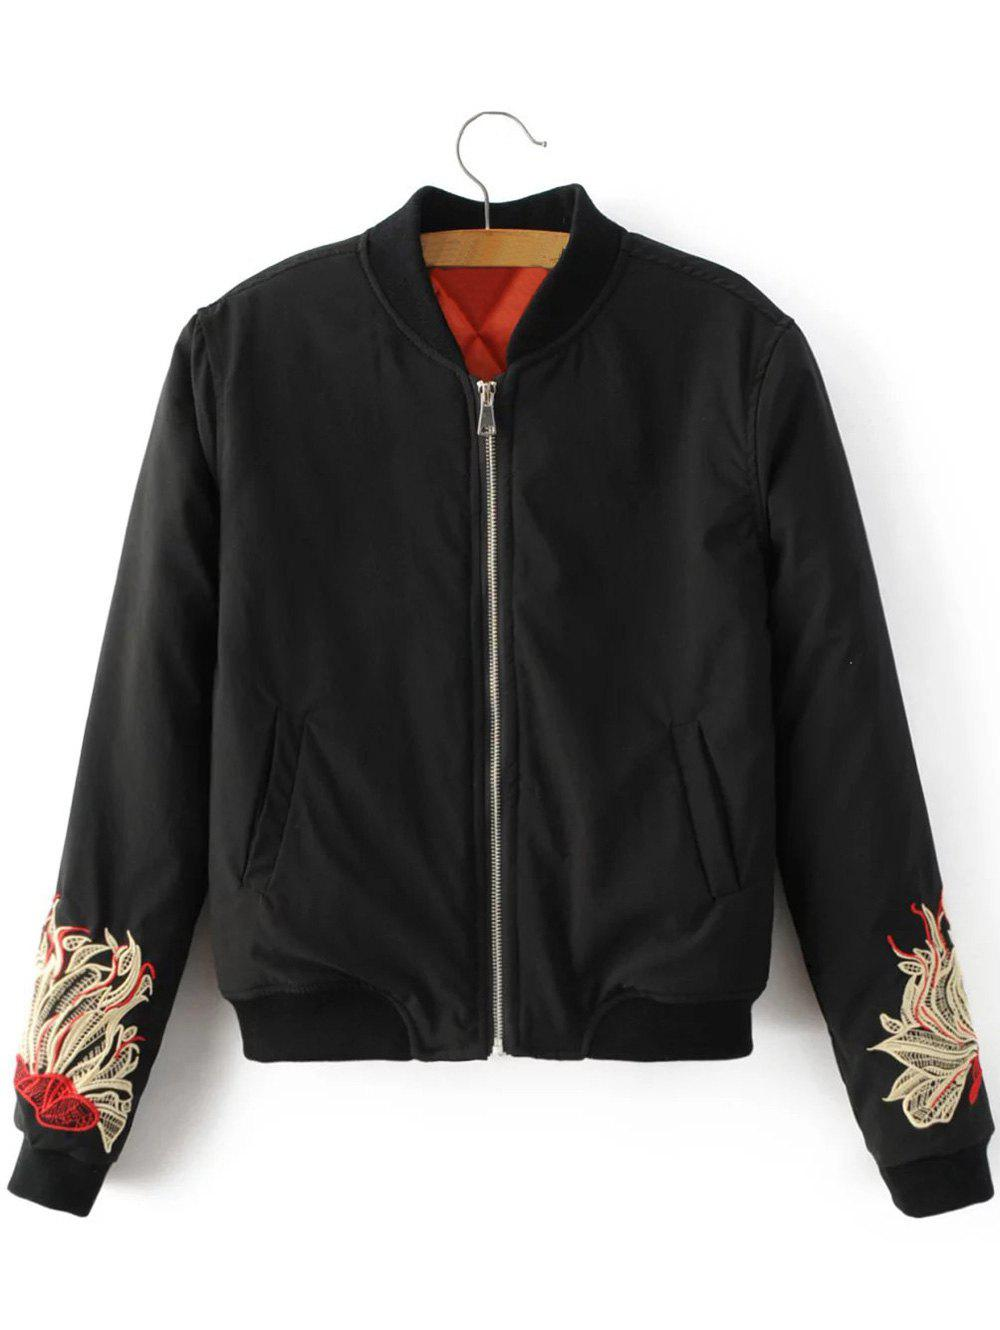 Chic Flower Embroidered Bomber Jacket